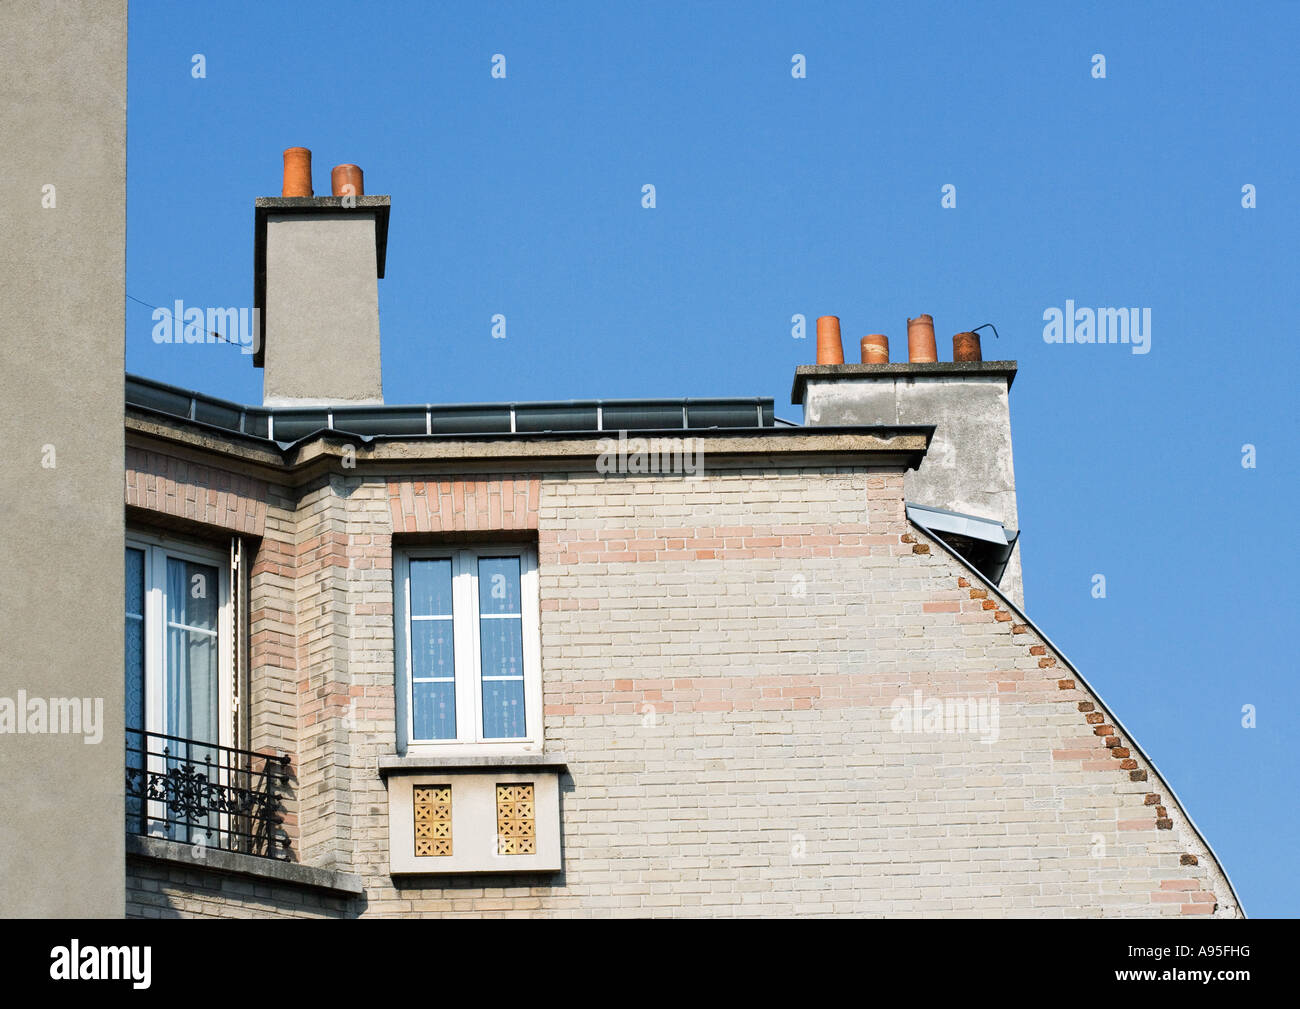 Apartment building, partial view - Stock Image